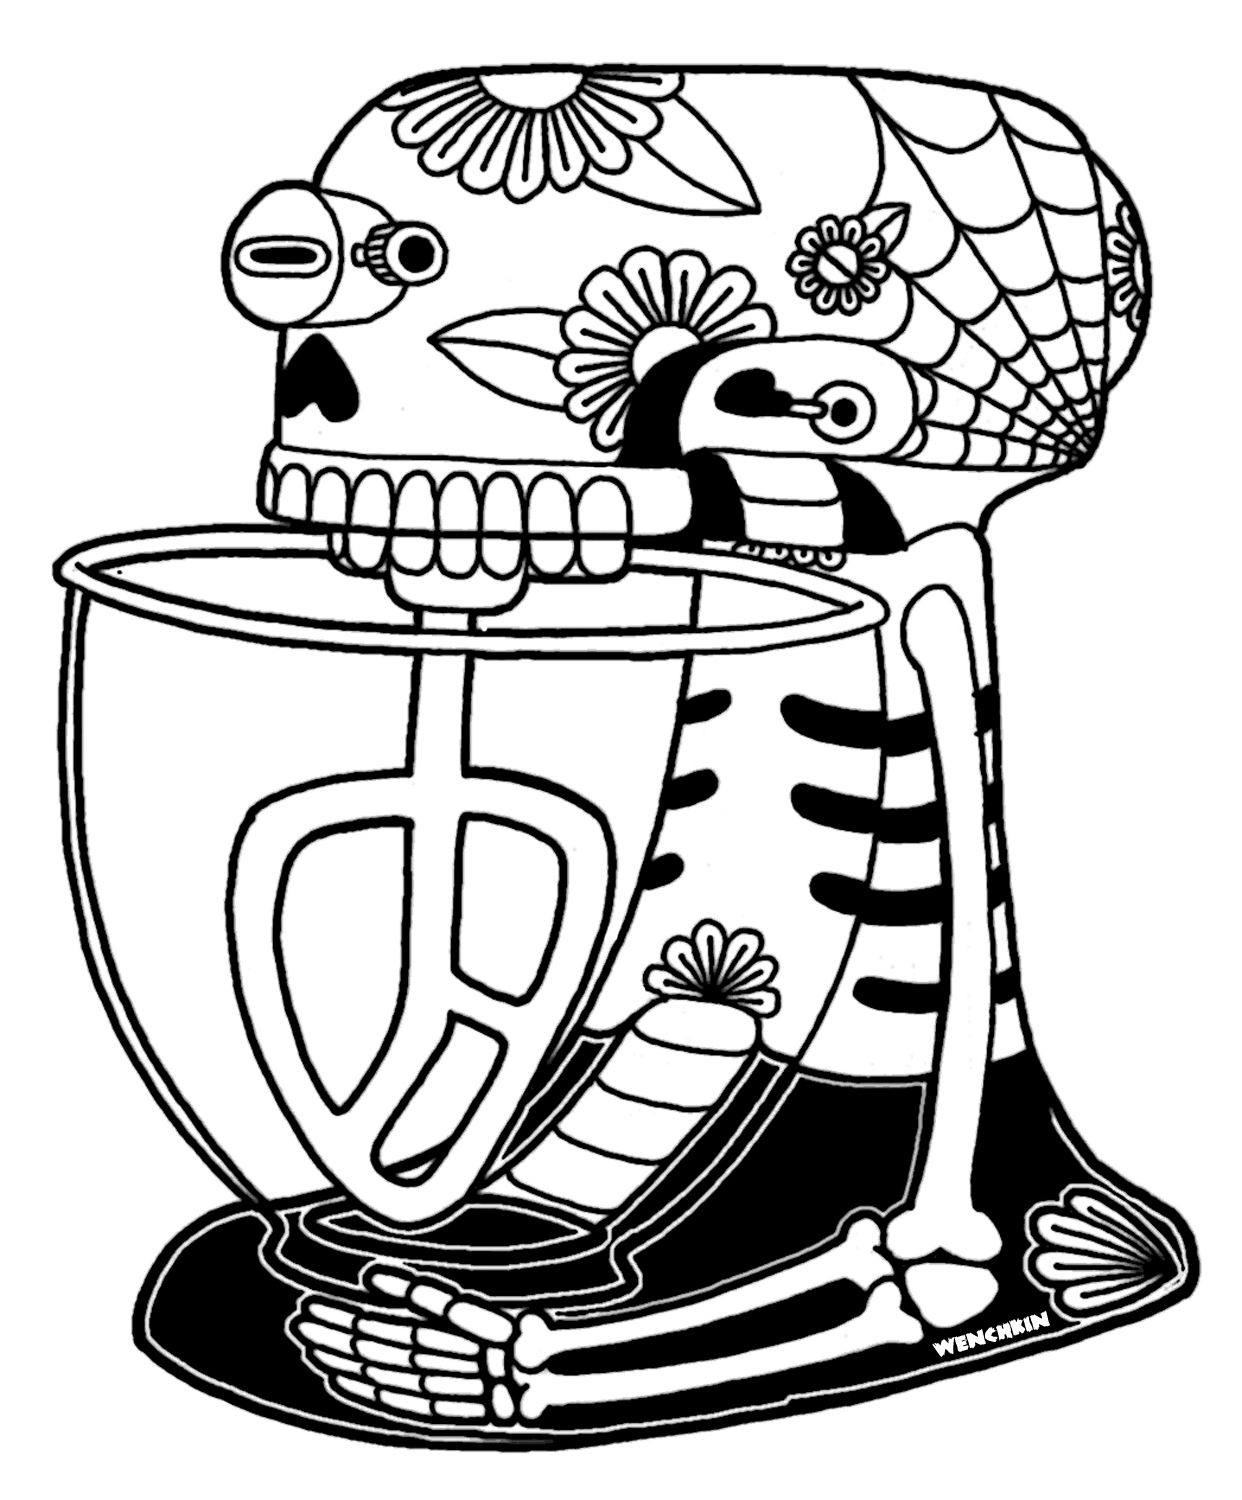 Yucca Flats, N.M.: Wenchkin's coloring pages - Mixer